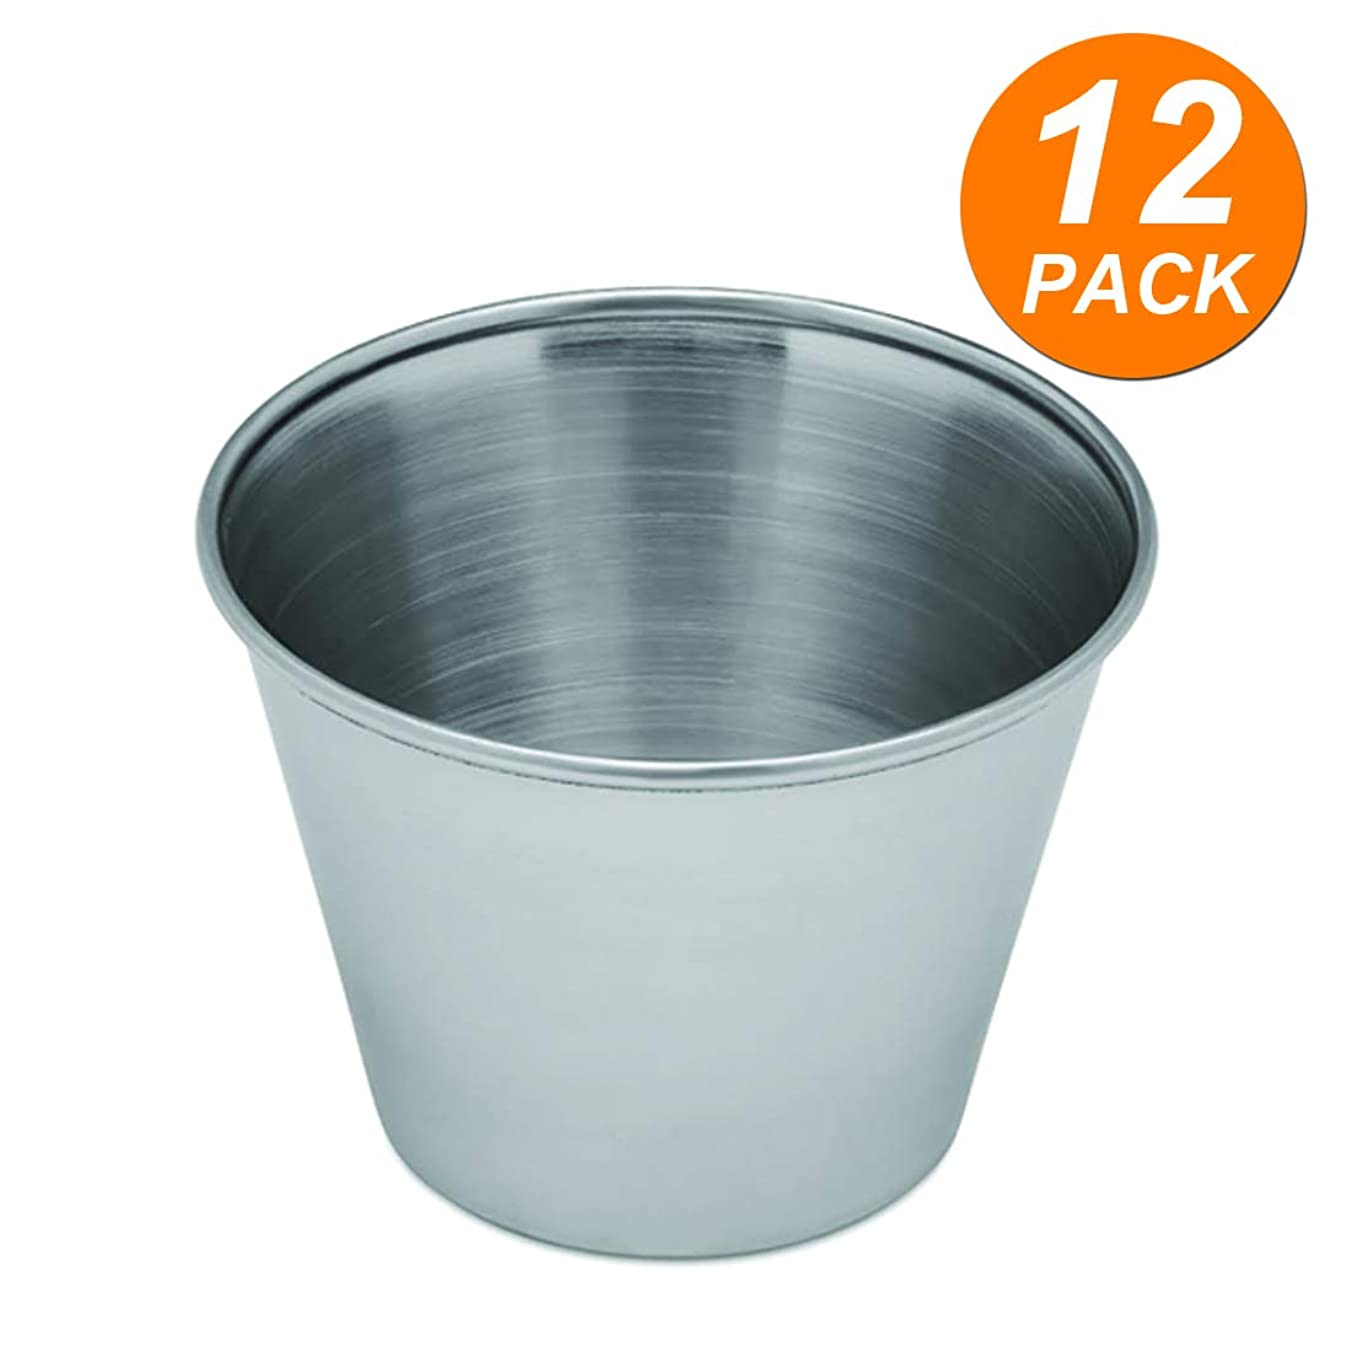 [12 Pack] Stainless Steel Condiment Sauce Cups, 2.5 oz. - Great for Dipping and Portion Cups